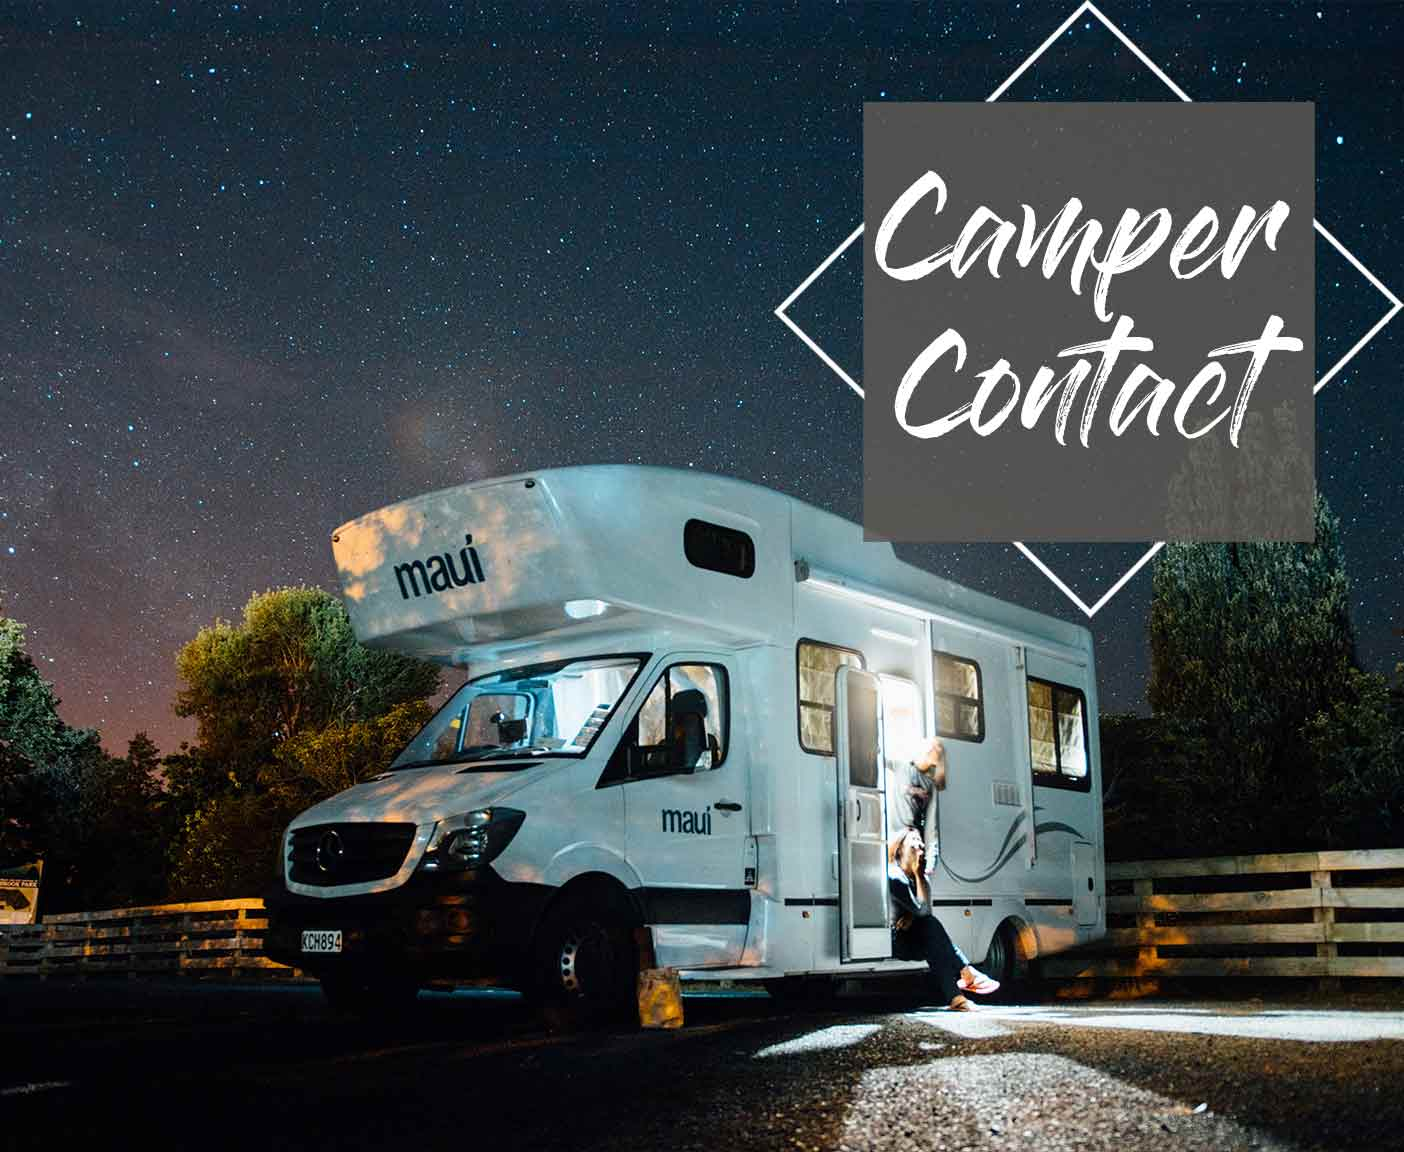 campercontact-application-roadtrip-vanlife-vacances-dormir-europe